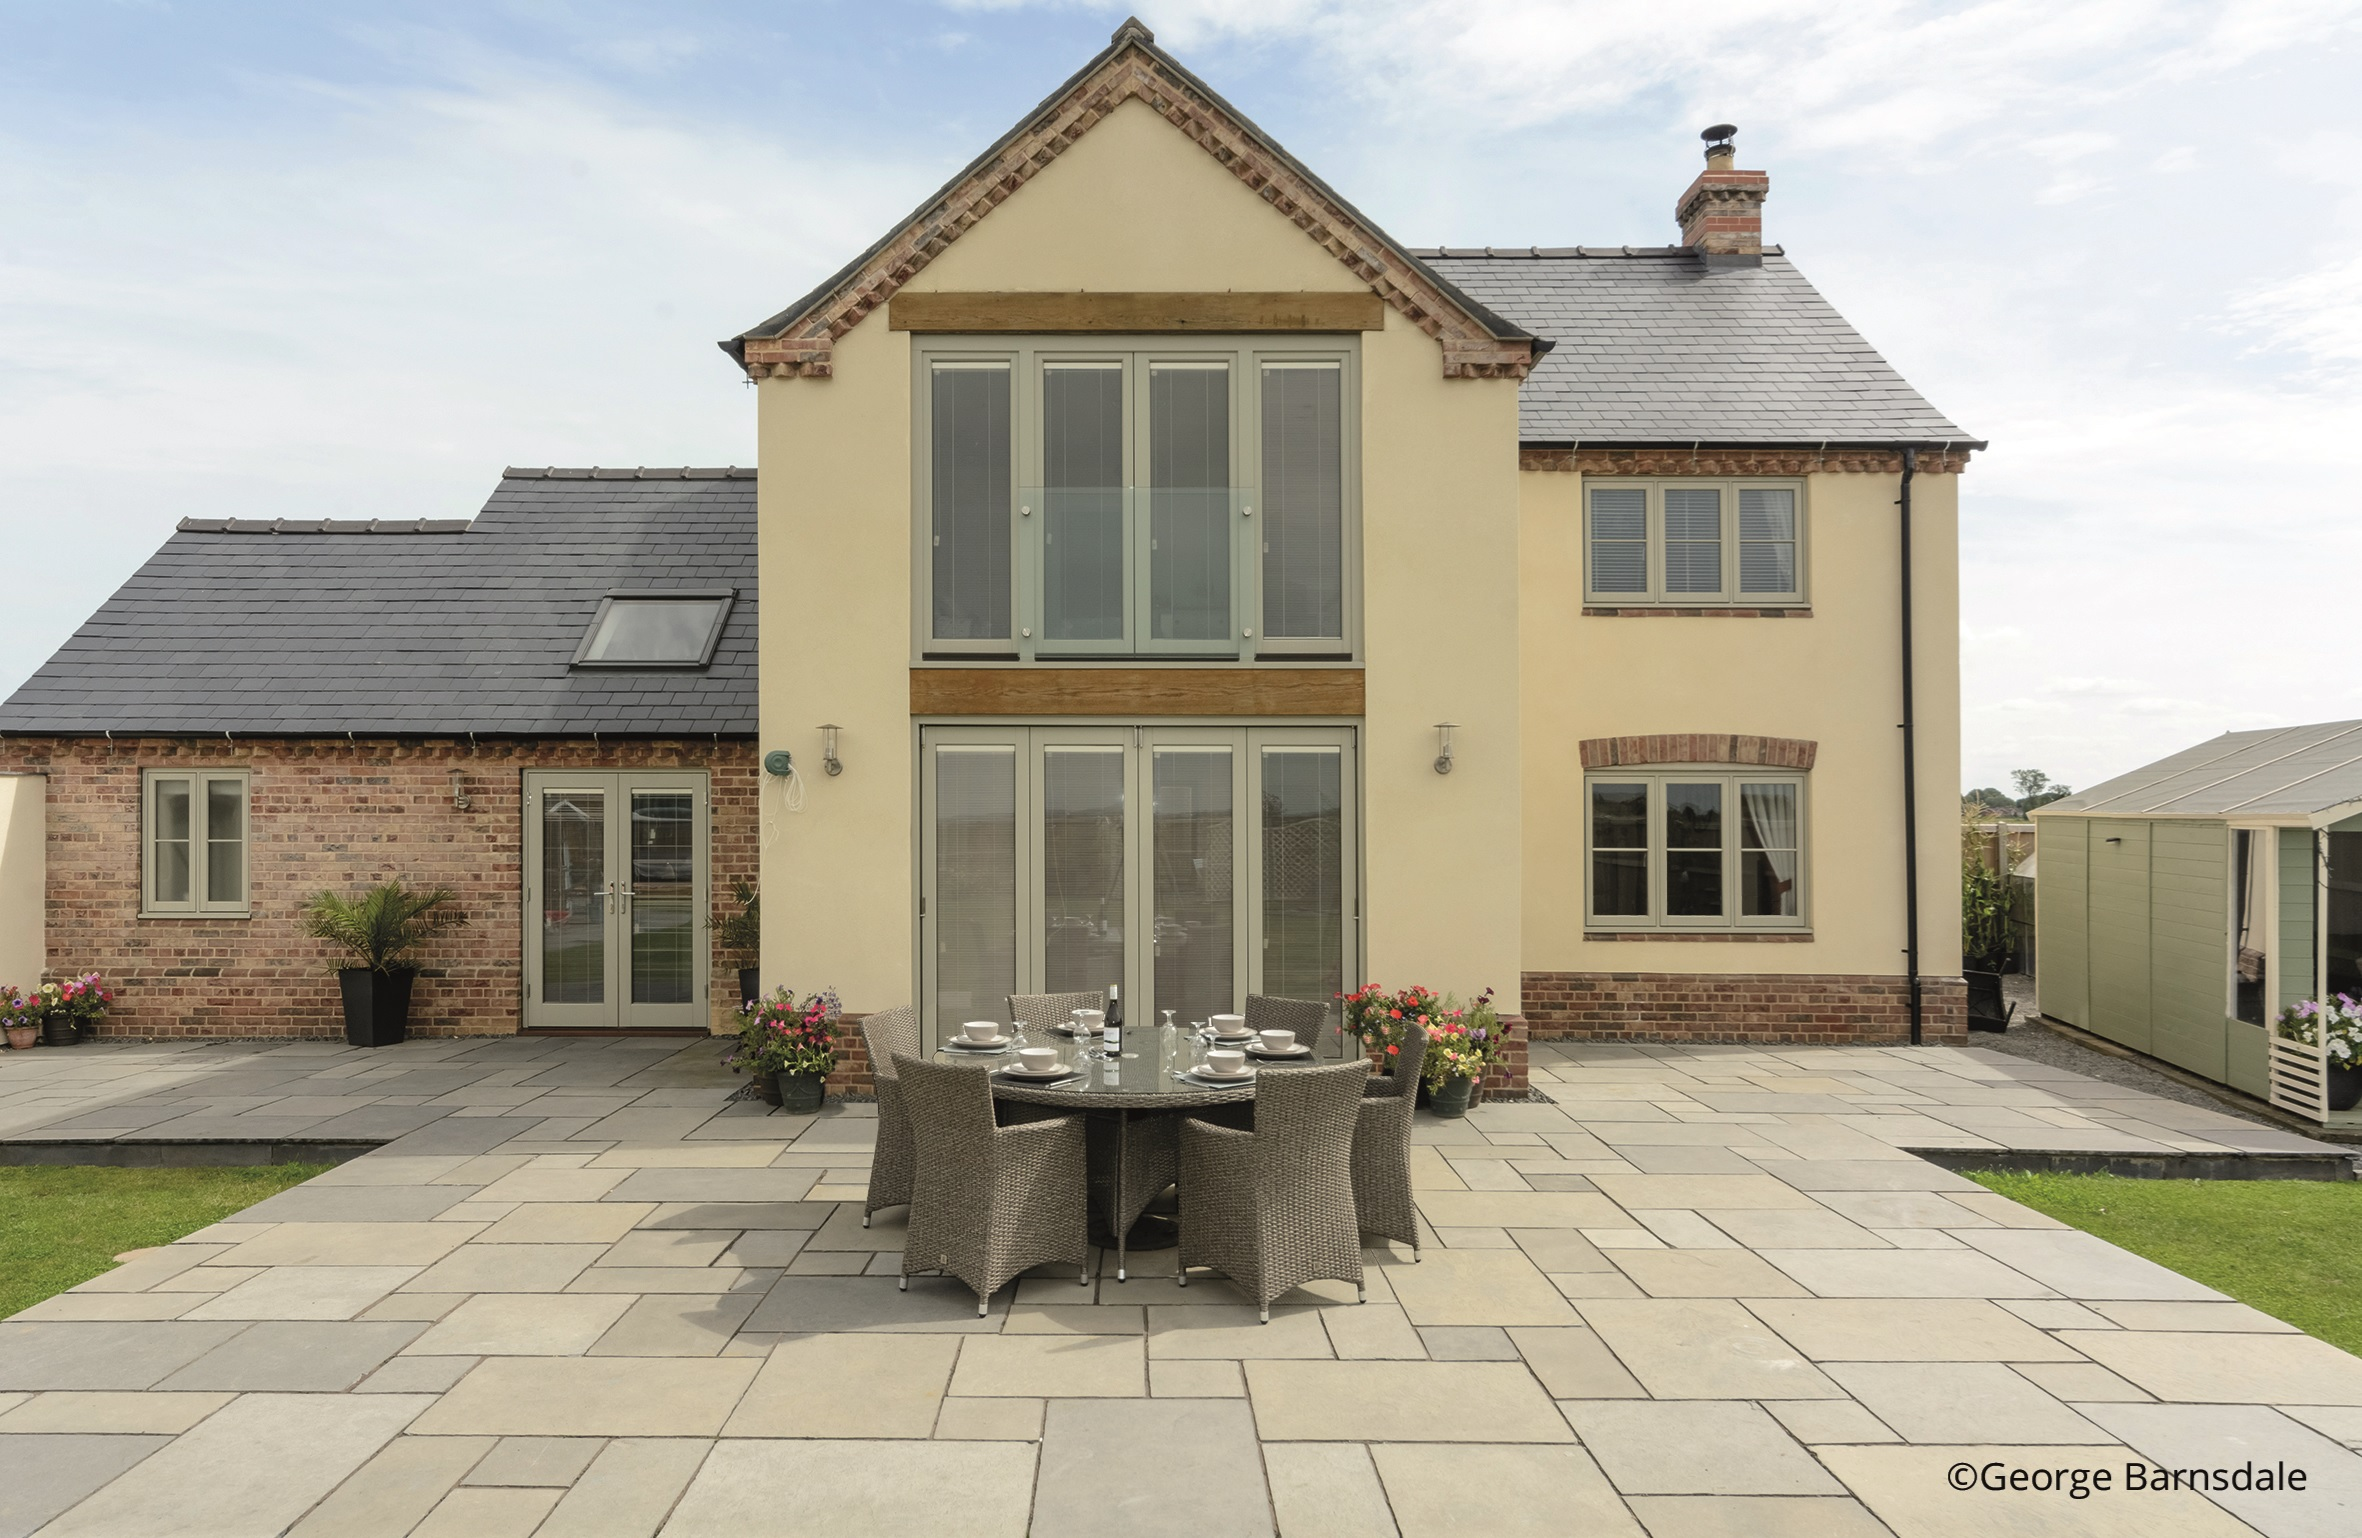 George Barnsdale traditional timber windows